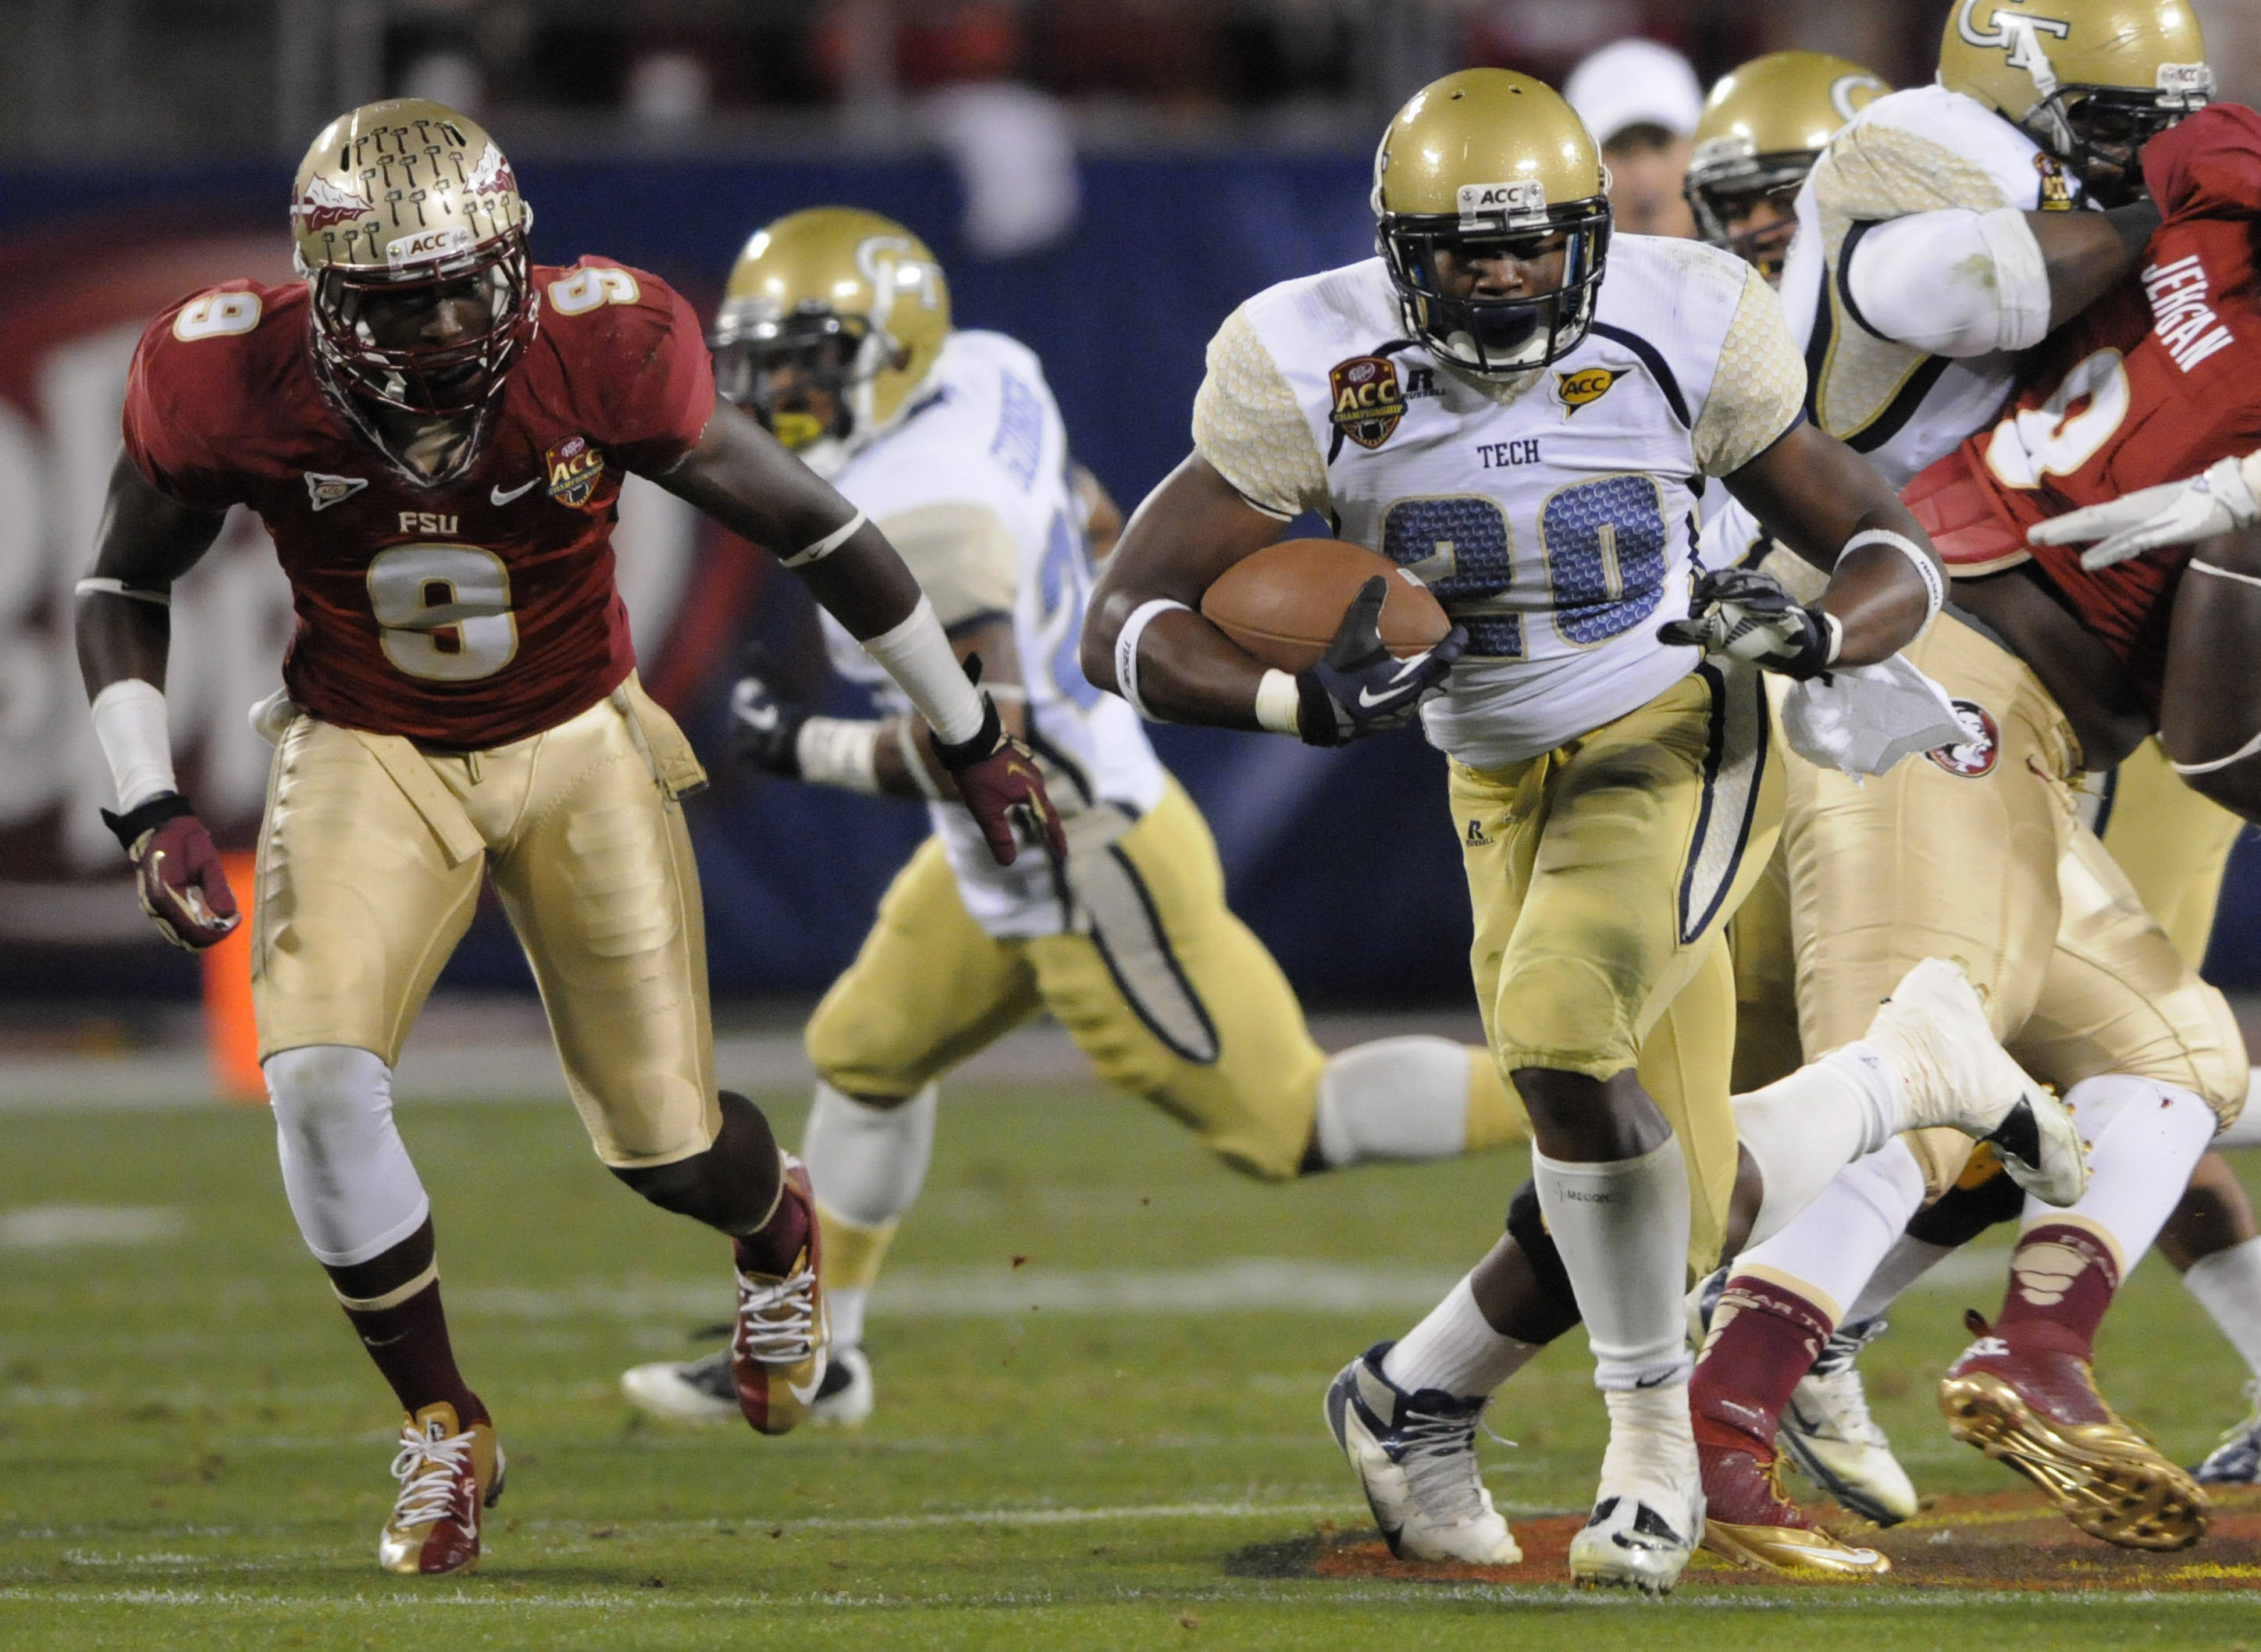 Georgia Tech's David Sims (20) runs past Florida State's Timmy Jernigan (8) during the first half of the ACC Championship college football game in Charlotte, N.C., Saturday, Dec. 1, 2012. (AP Photo/Mike McCarn)